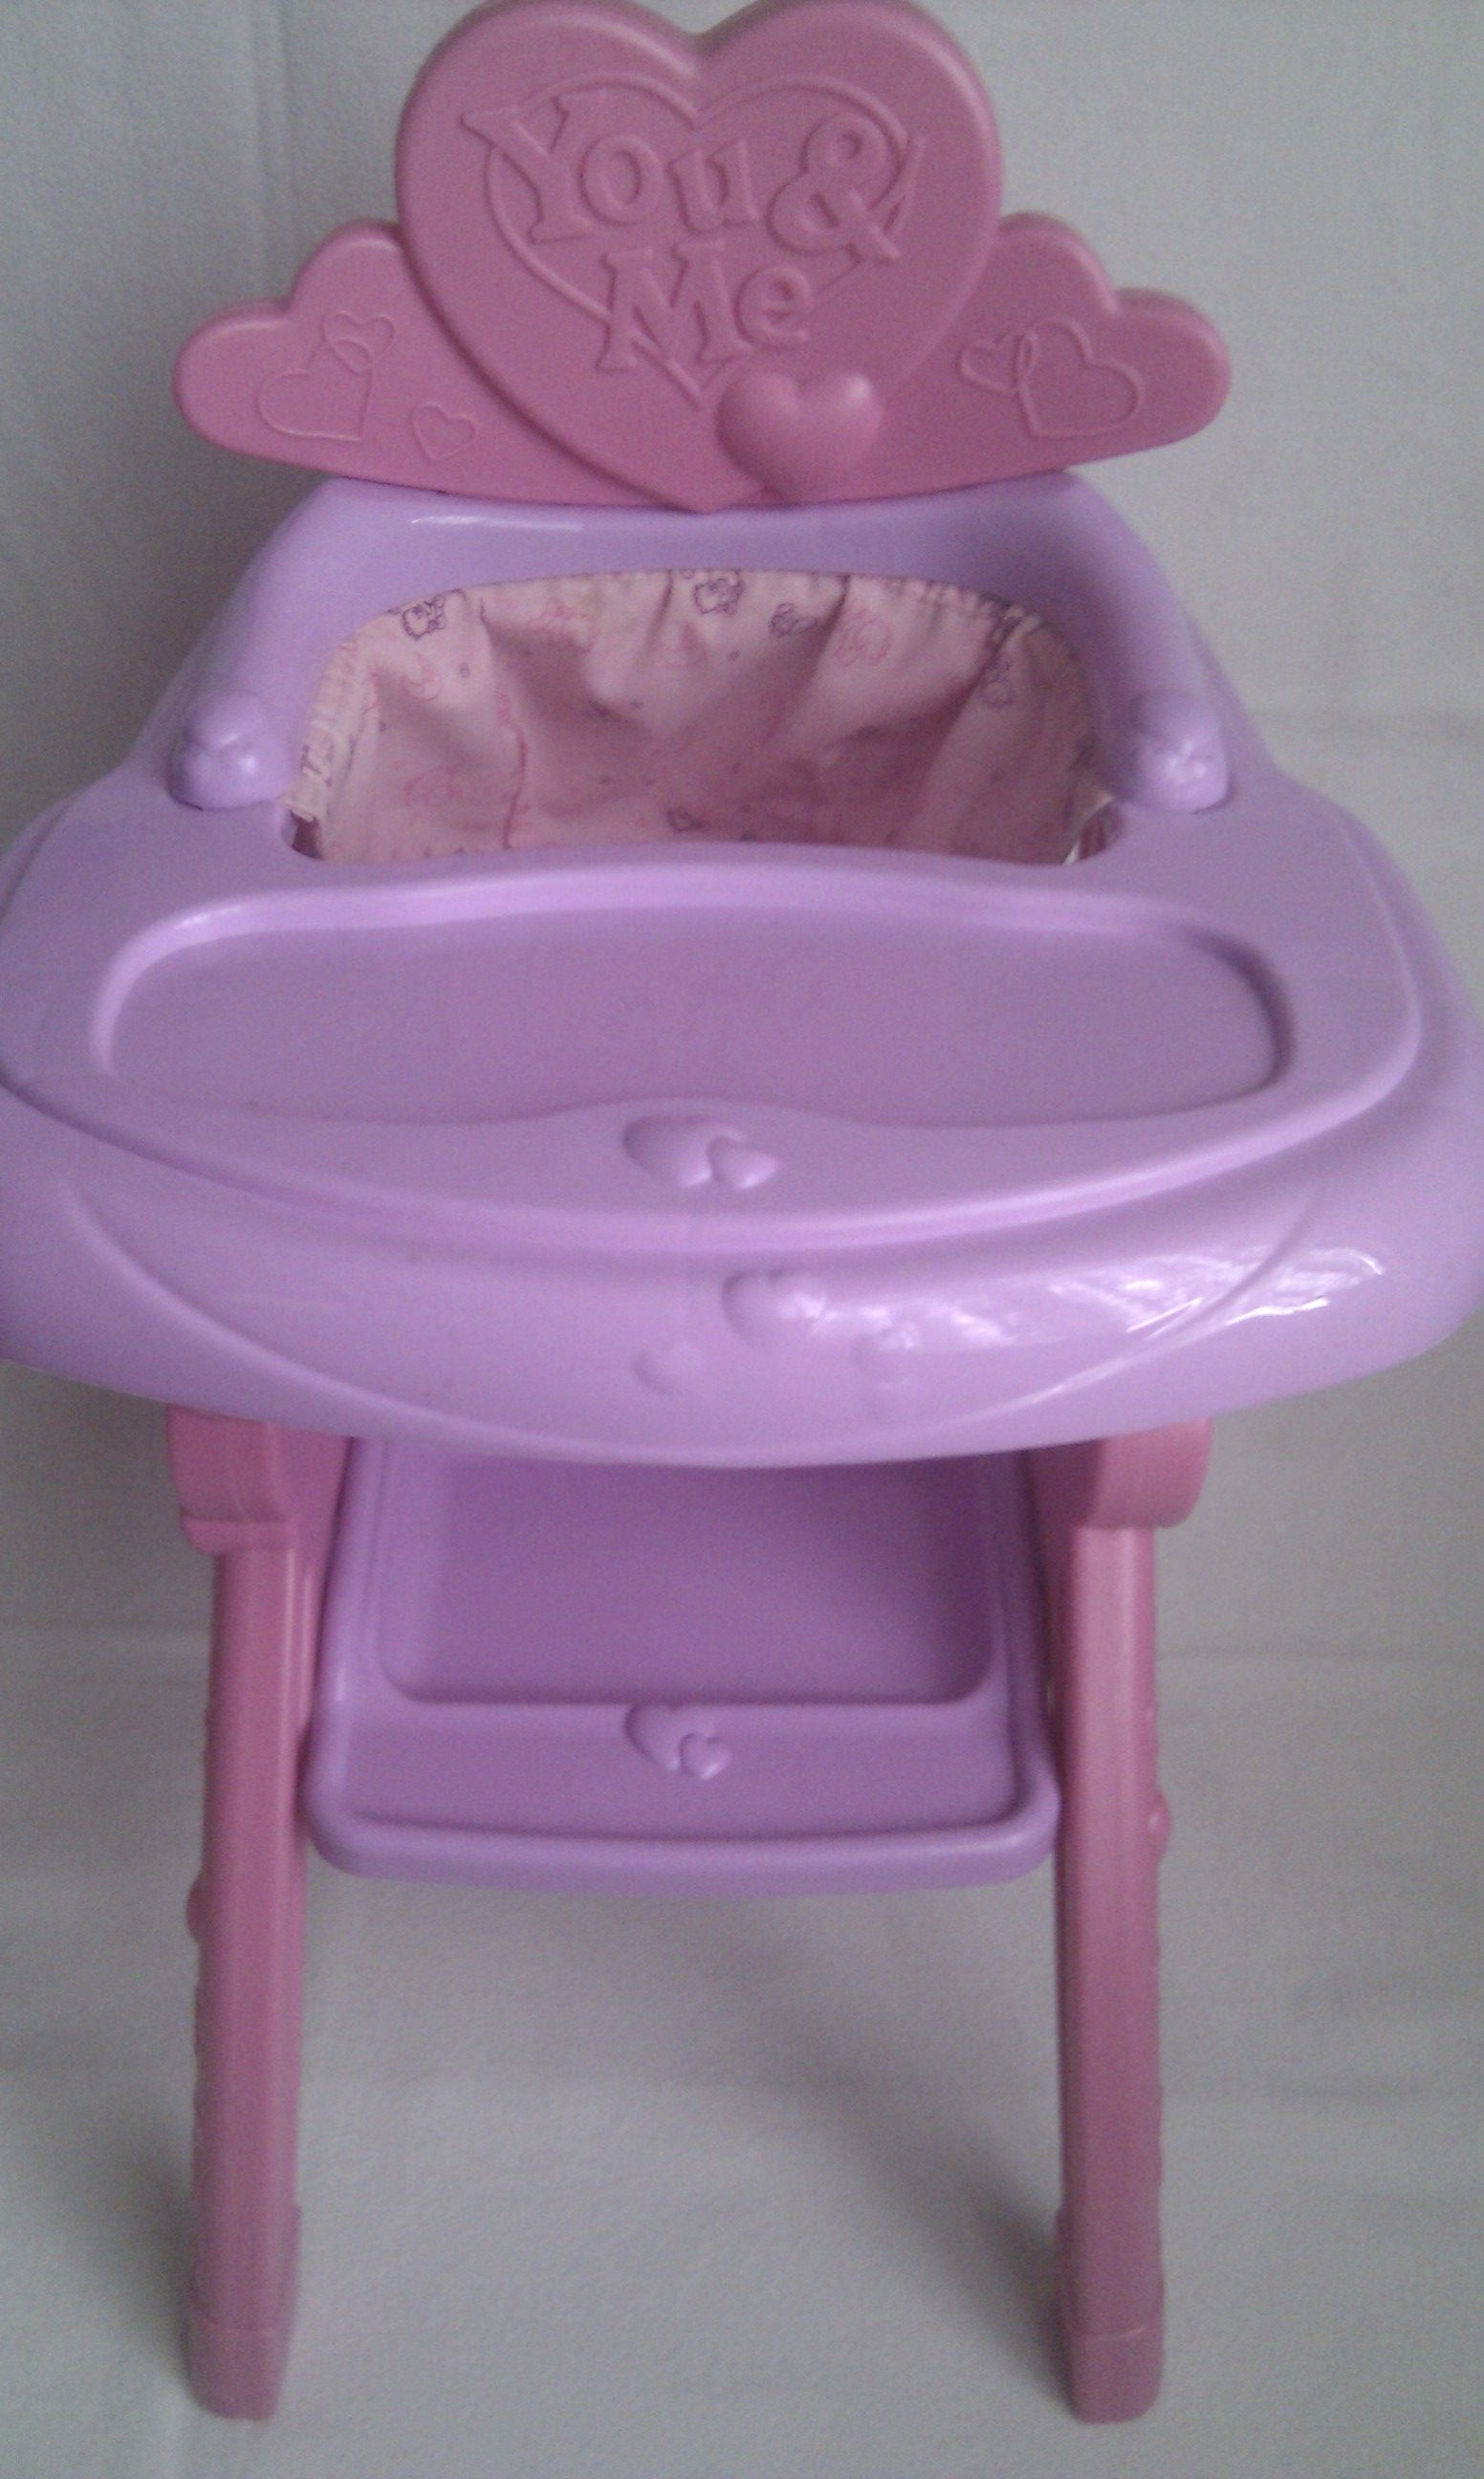 high chair for dolls bean bag filler kmart adorable baby doll you and me